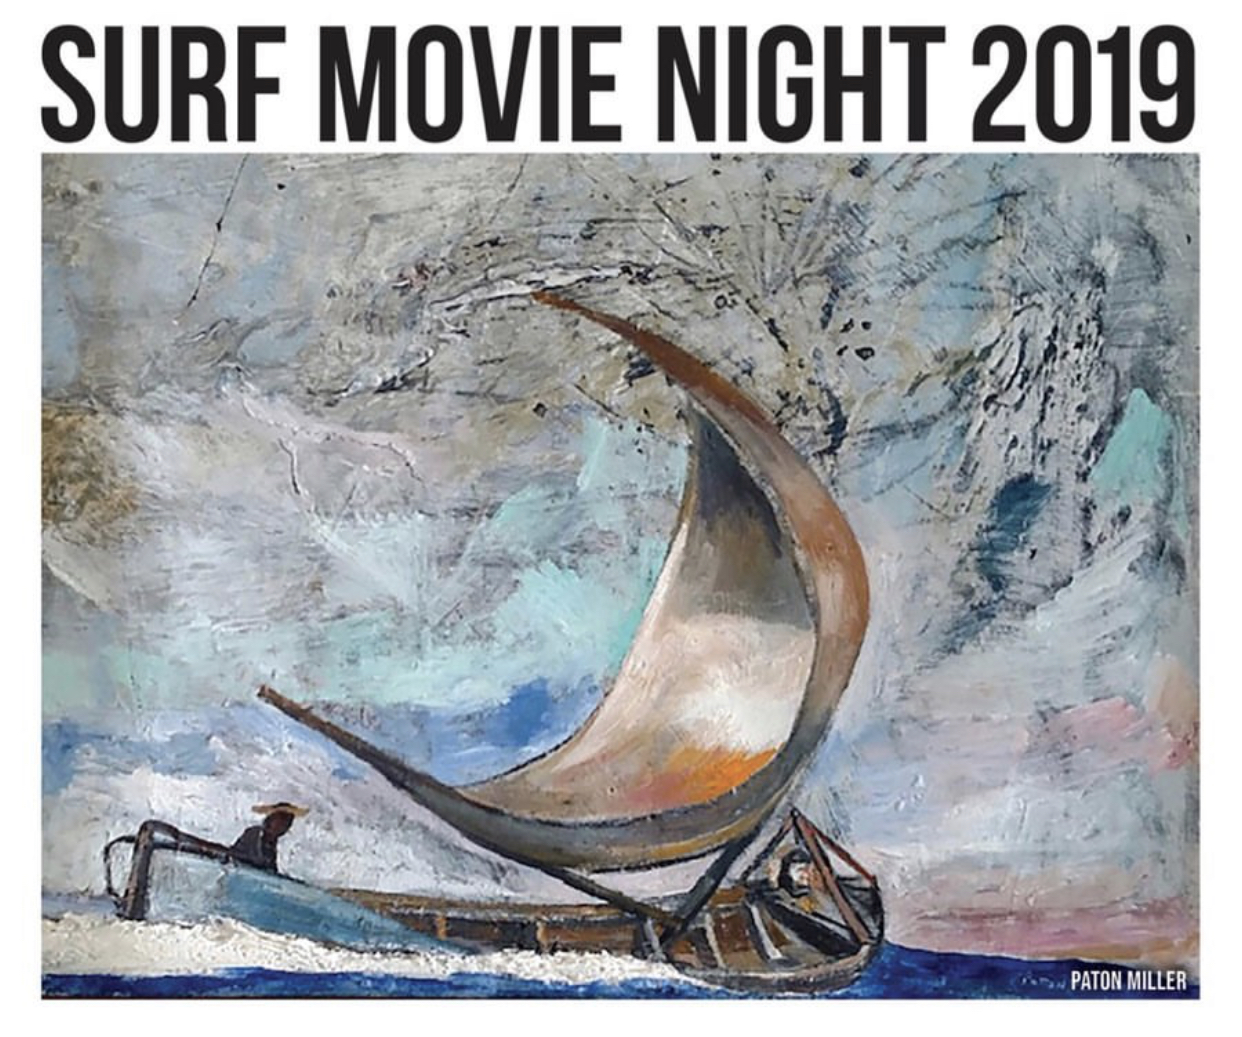 The Seventeenth Annual Surf Movie Night – July 31st, 2019